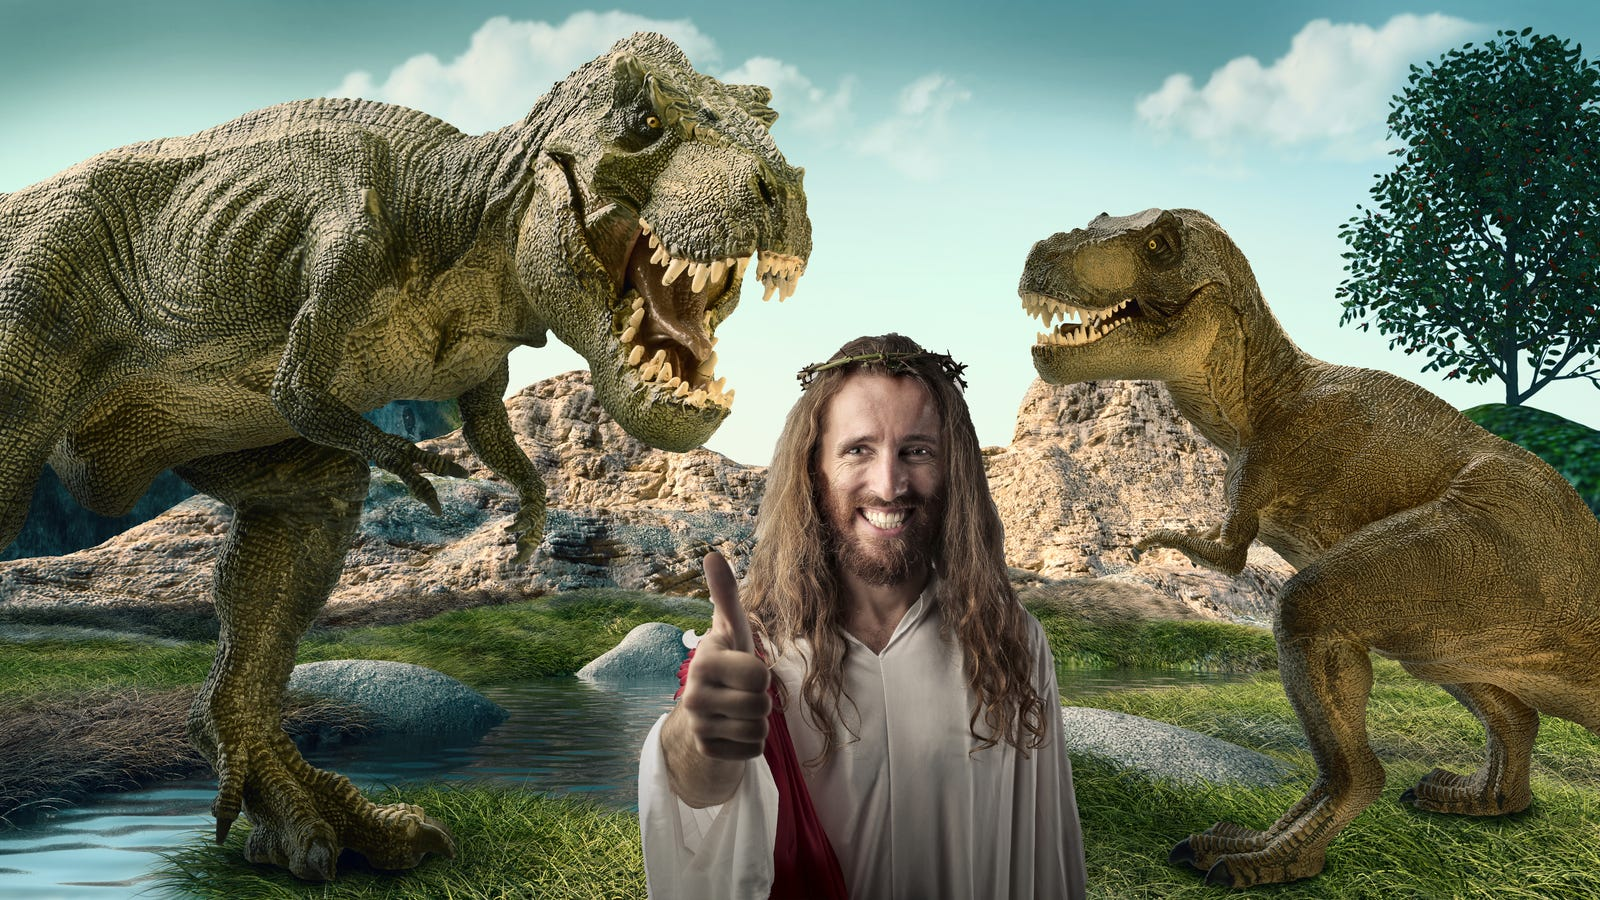 Slaves, Dinosaurs and White Jesus, Oh My! How Taxpayers Fund Crazy Christian Conservative Education